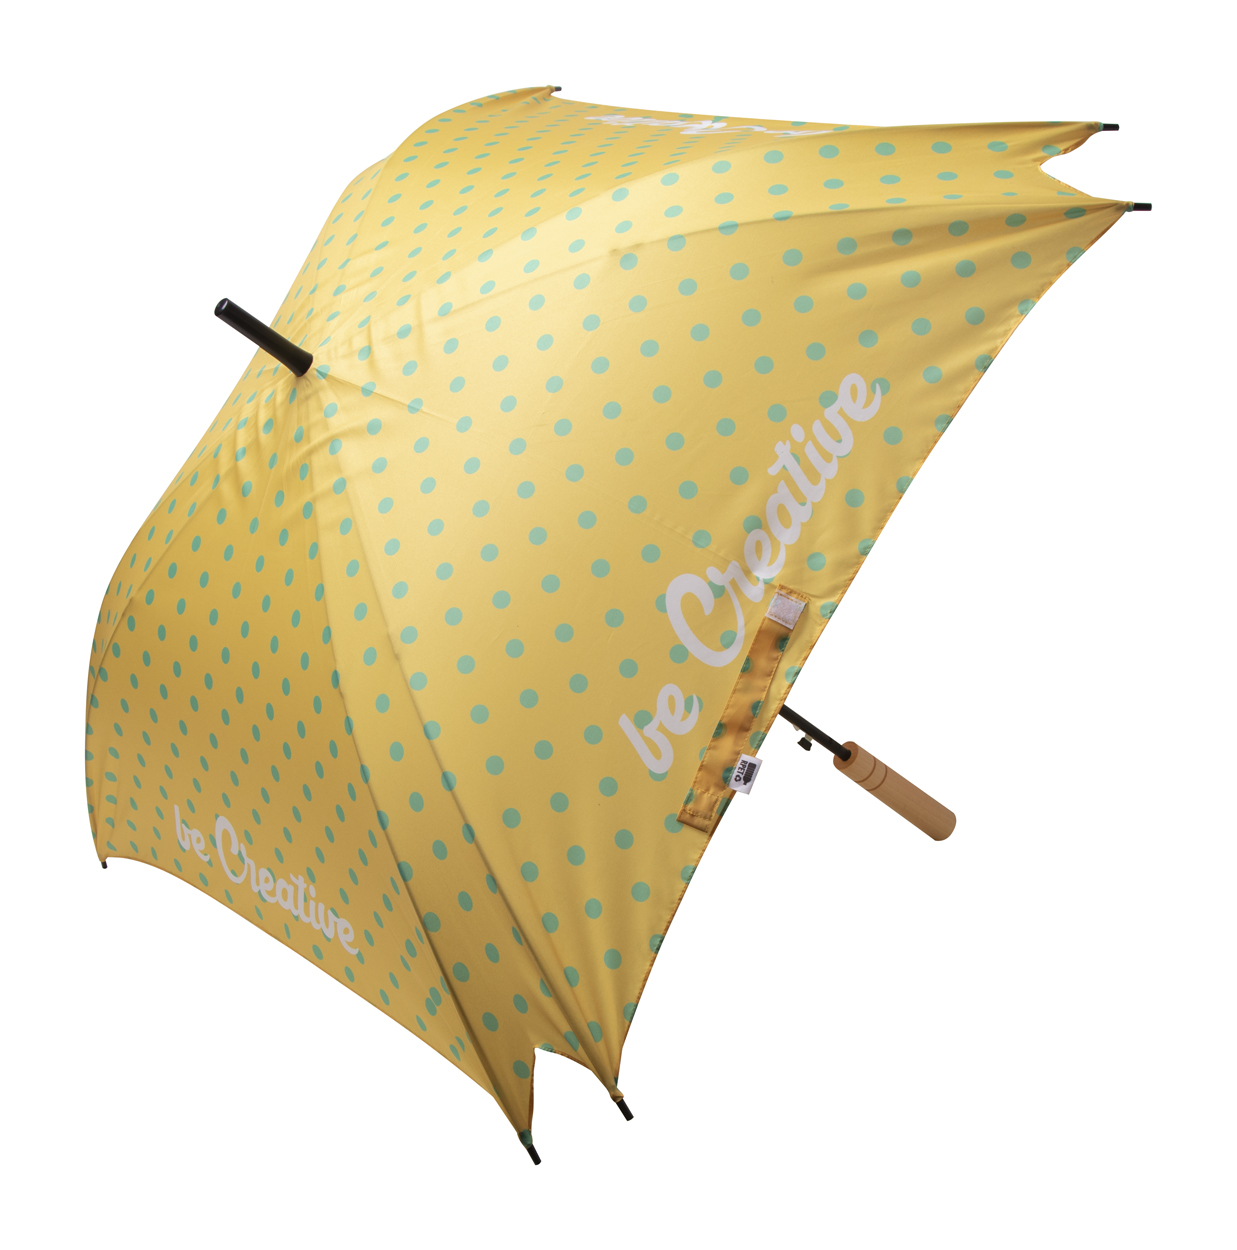 CreaRain Square RPET custom umbrella